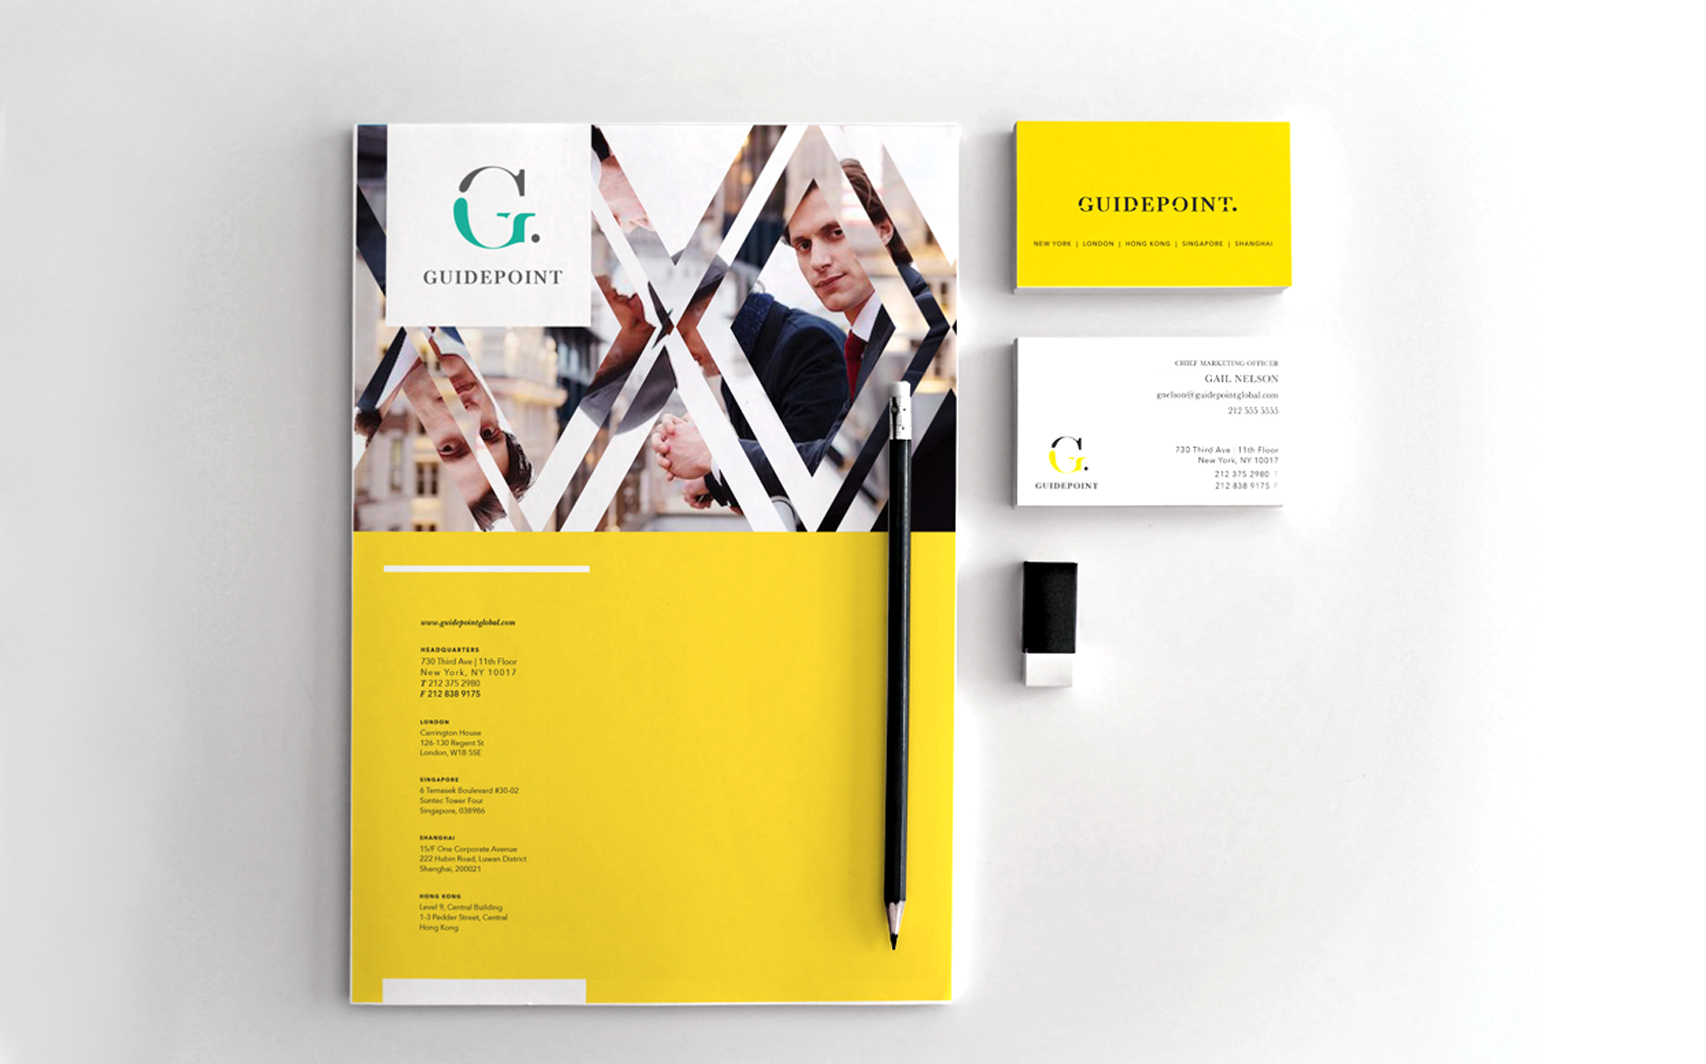 Guidepoint_05